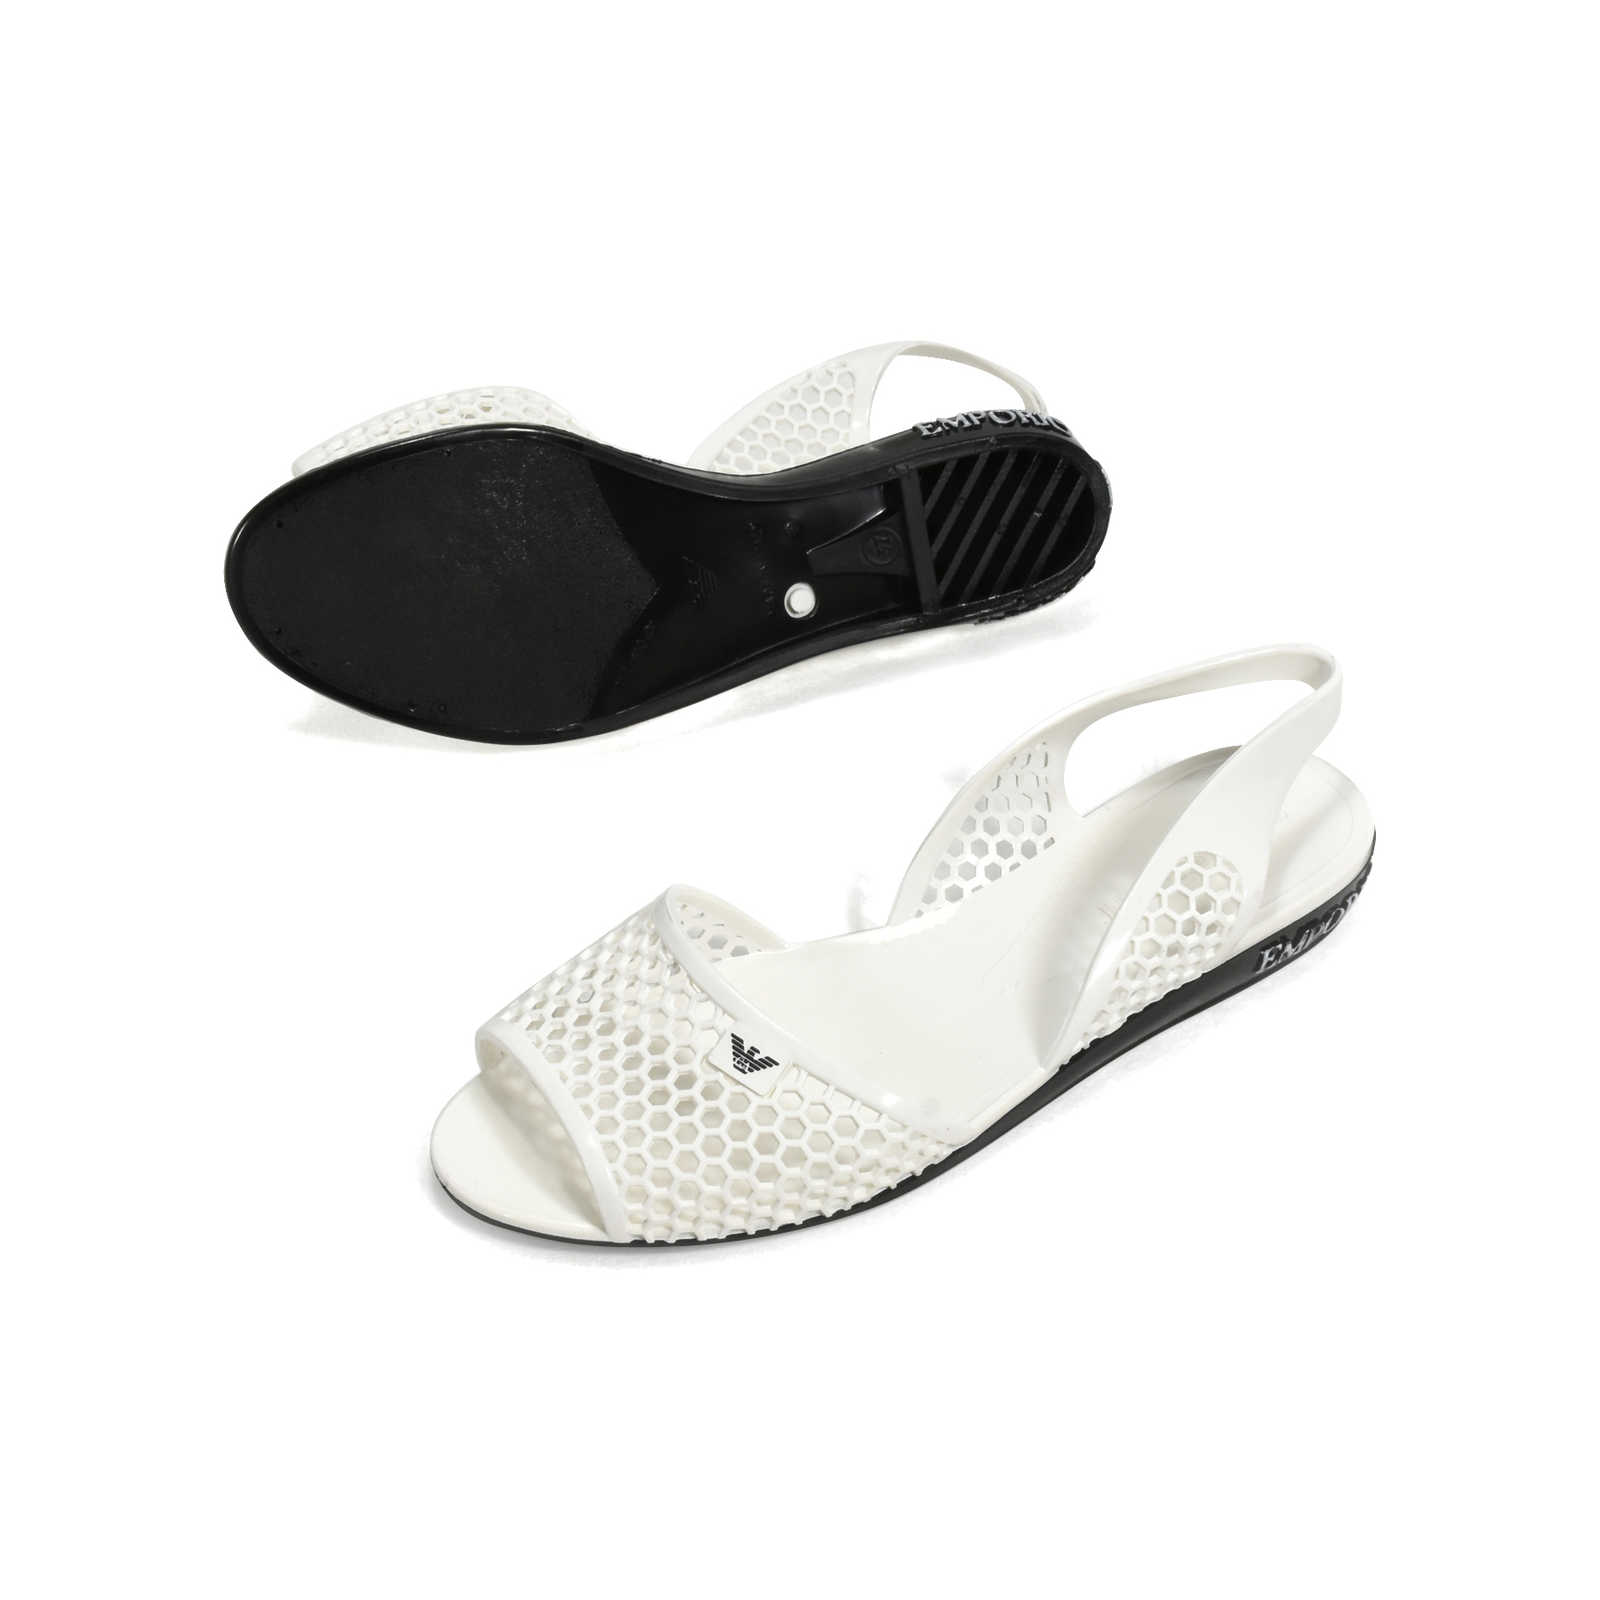 5b3d79ec73f ... Authentic Second Hand Emporio Armani Perforated Jelly Slingbacks  (PSS-369-00040) ...